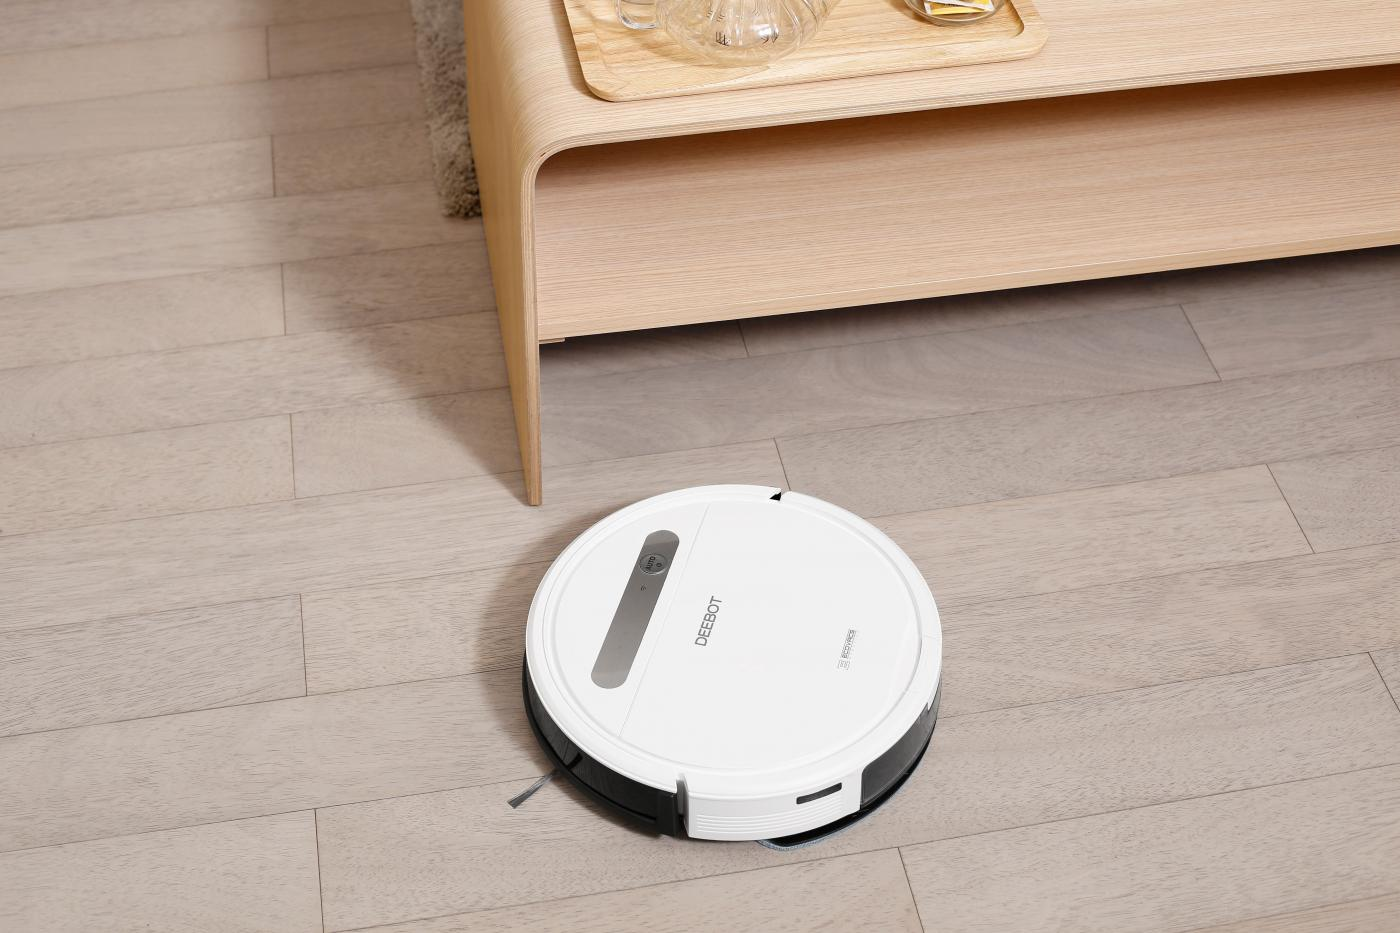 Aldi Is Selling A Robot That Vacuums And Mops Your Floor